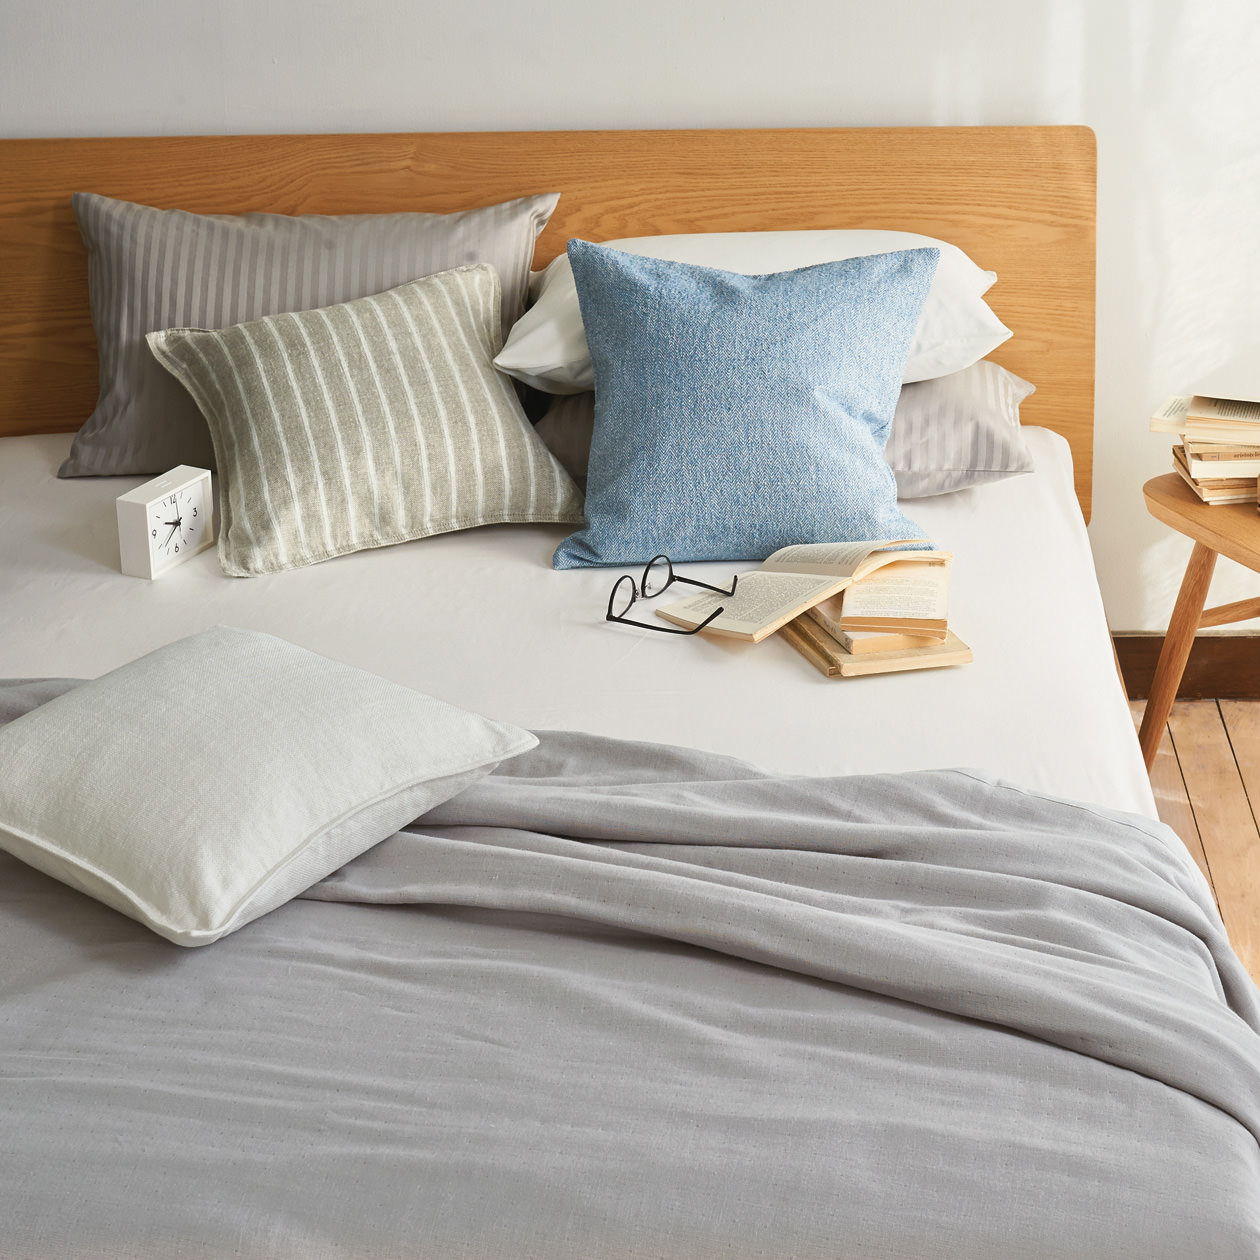 Muji Bed Sheets Indian Cotton Hd Satin Fitted Sheet 無印良品 Muji